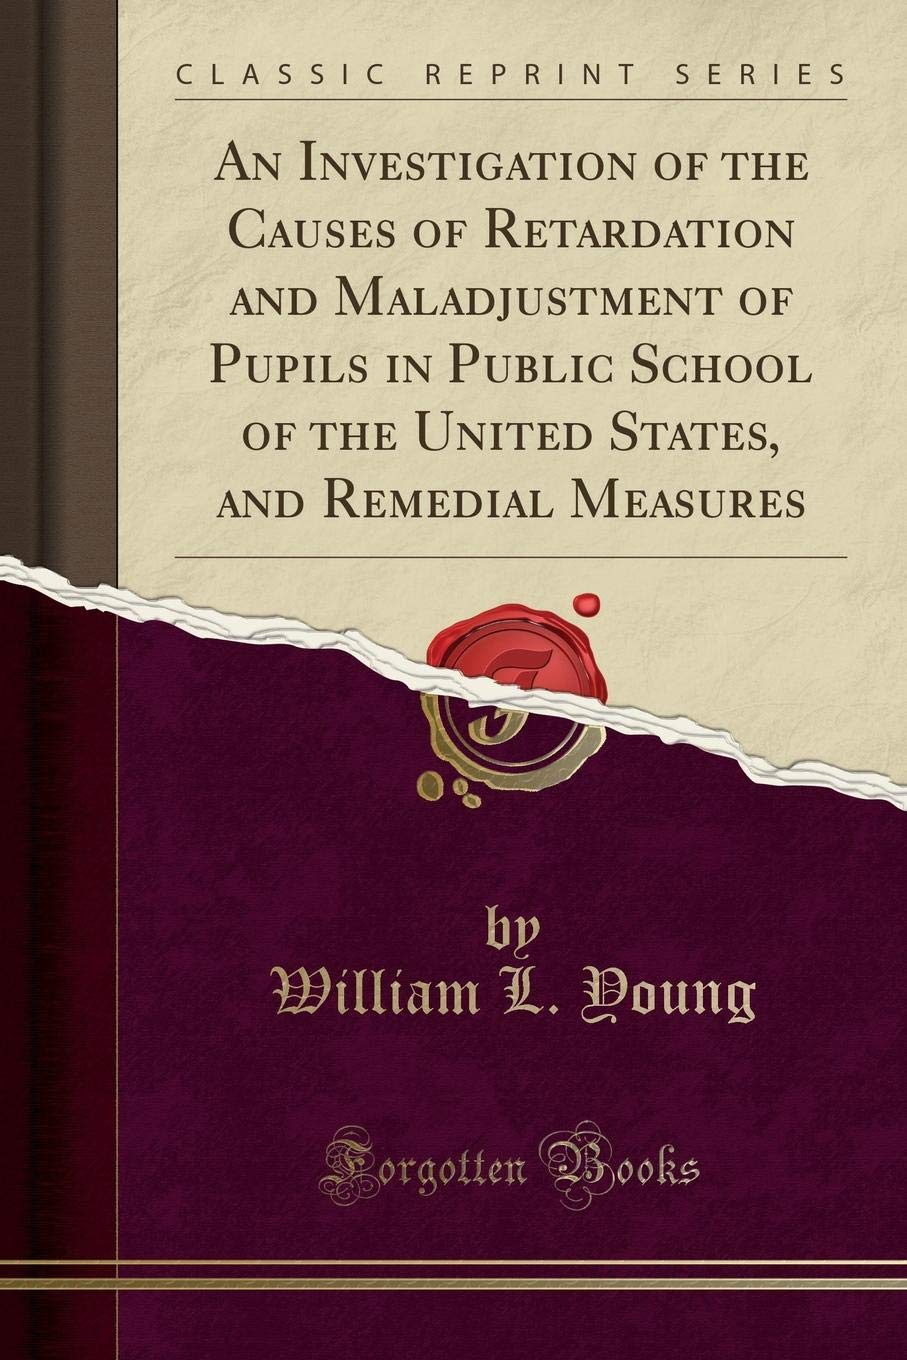 Download An Investigation of the Causes of Retardation and Maladjustment of Pupils in Public School of the United States, and Remedial Measures (Classic Reprint) ebook